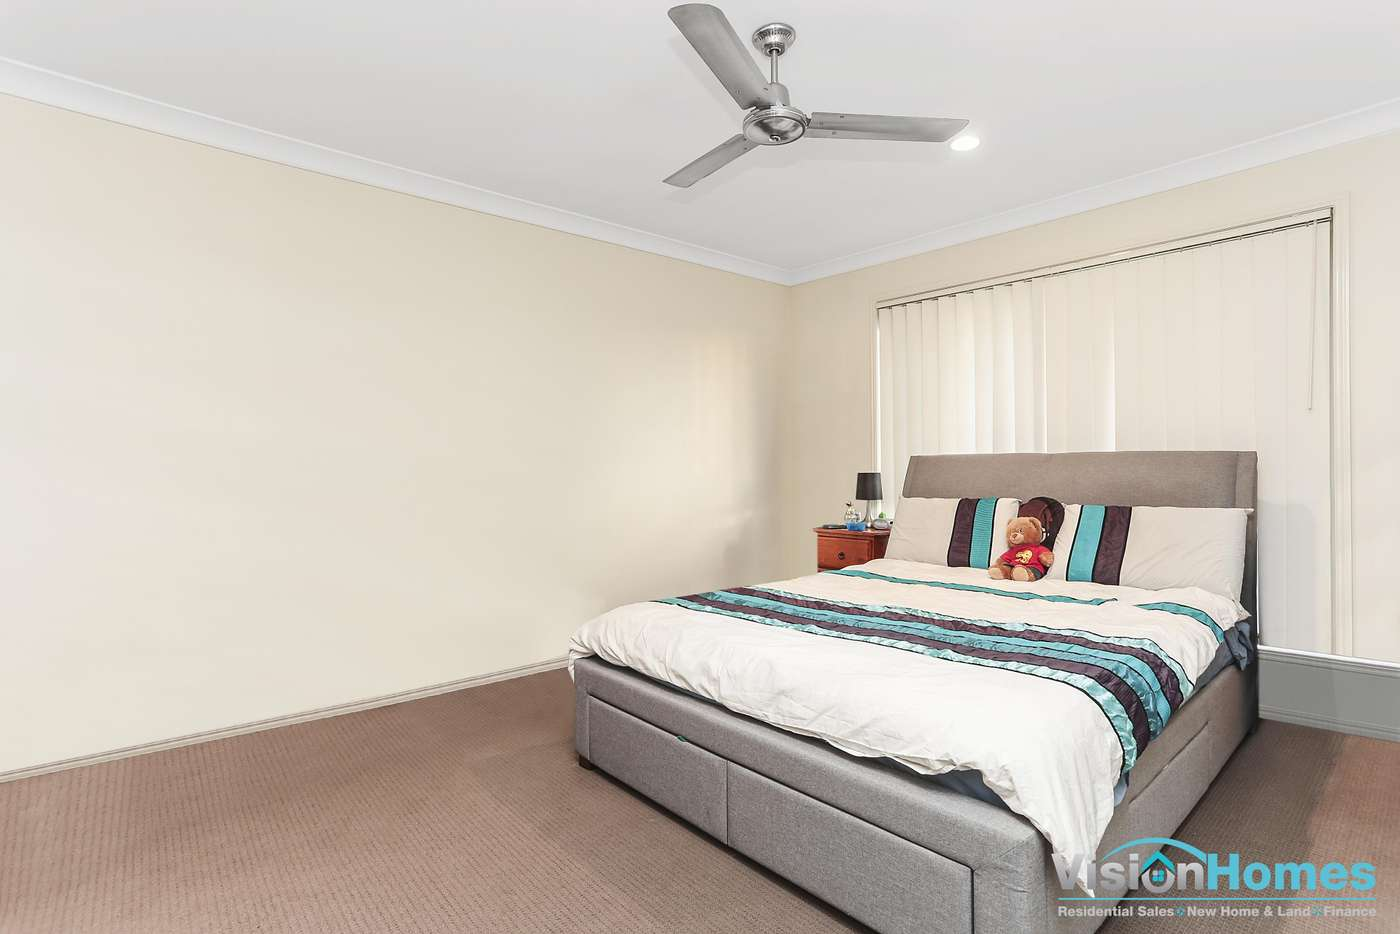 Sixth view of Homely house listing, 26 Pencarrow Crescent, Raceview QLD 4305